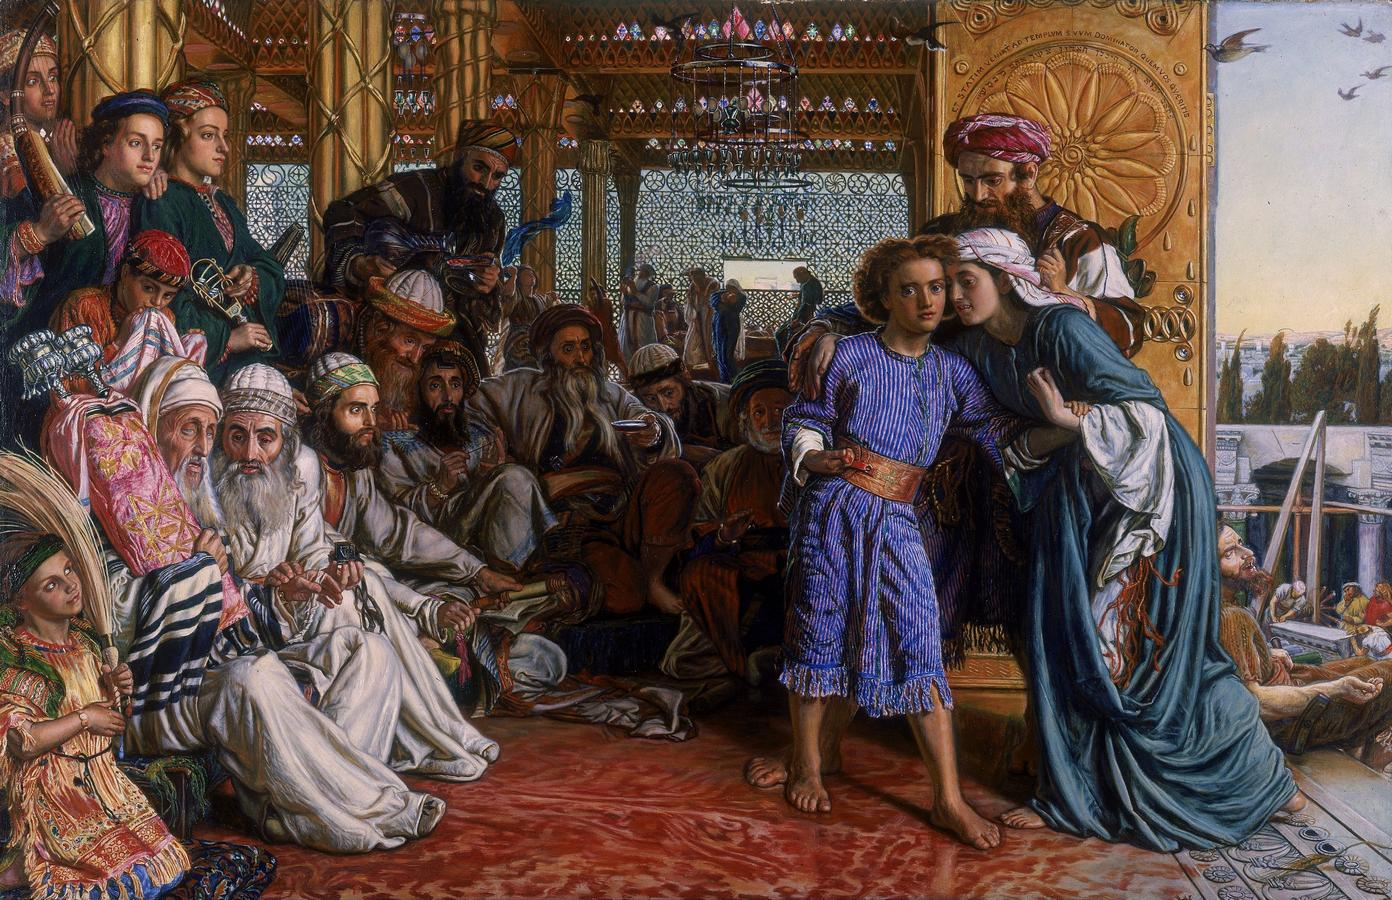 William_Holman_Hunt_-_The_Finding_of_the_Saviour_in_the_Temple.jpg